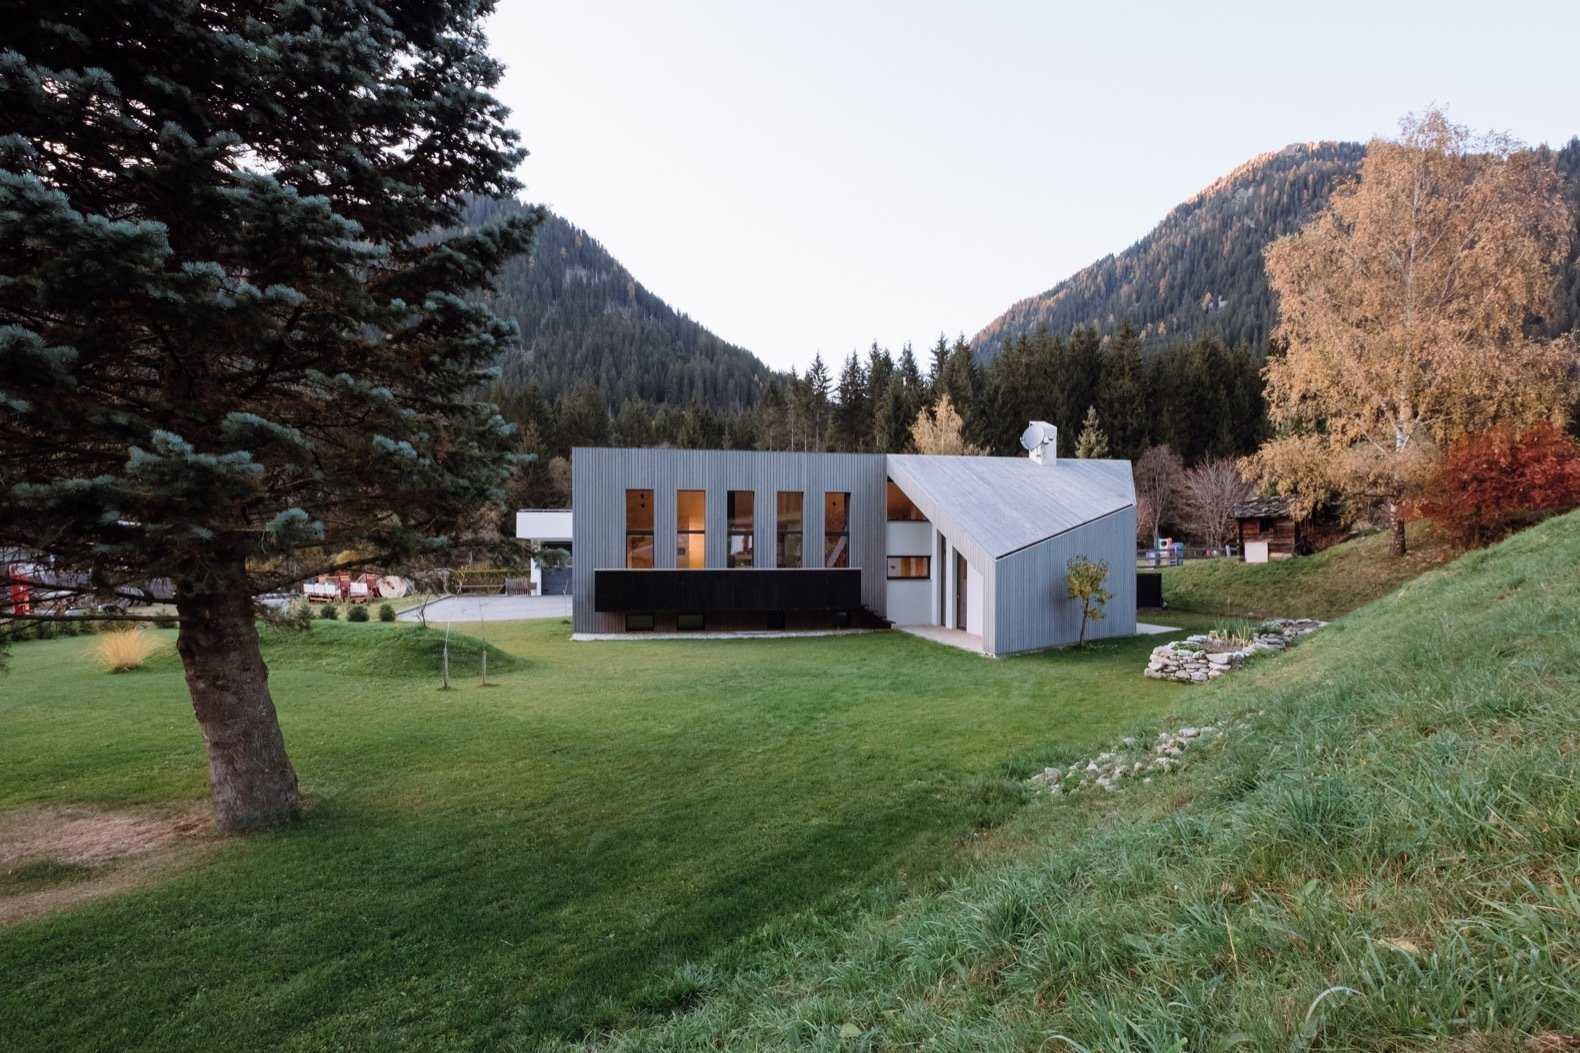 Located in the valley and commune of Gsies, House L is surrounded by mountains and dense forests.